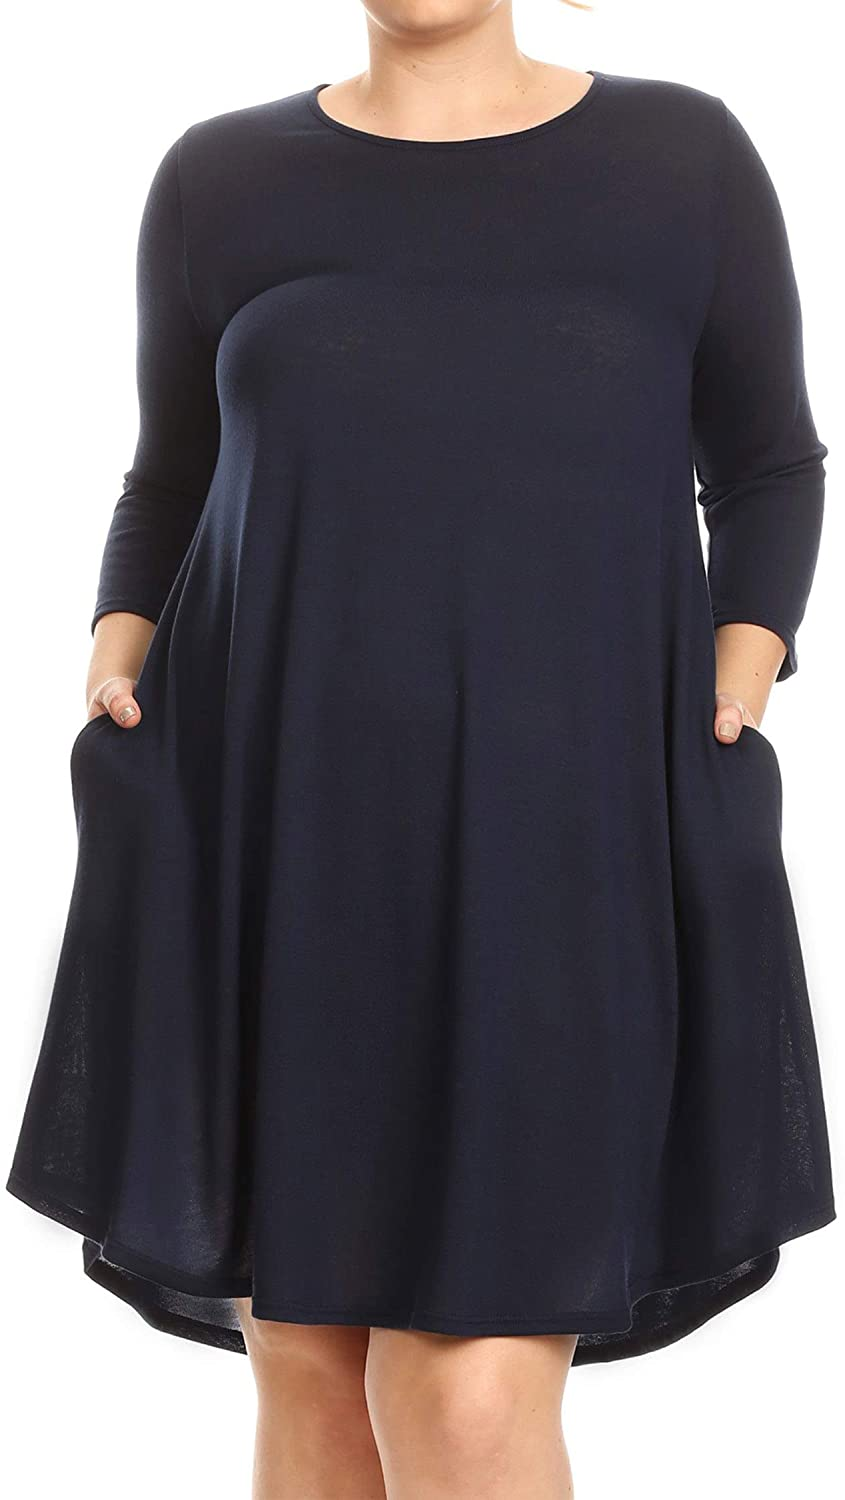 FashionStream Womens Solid Basic Short A-Line Relaxed Fit Side Pocket Plus Size Tunic Knit Dress